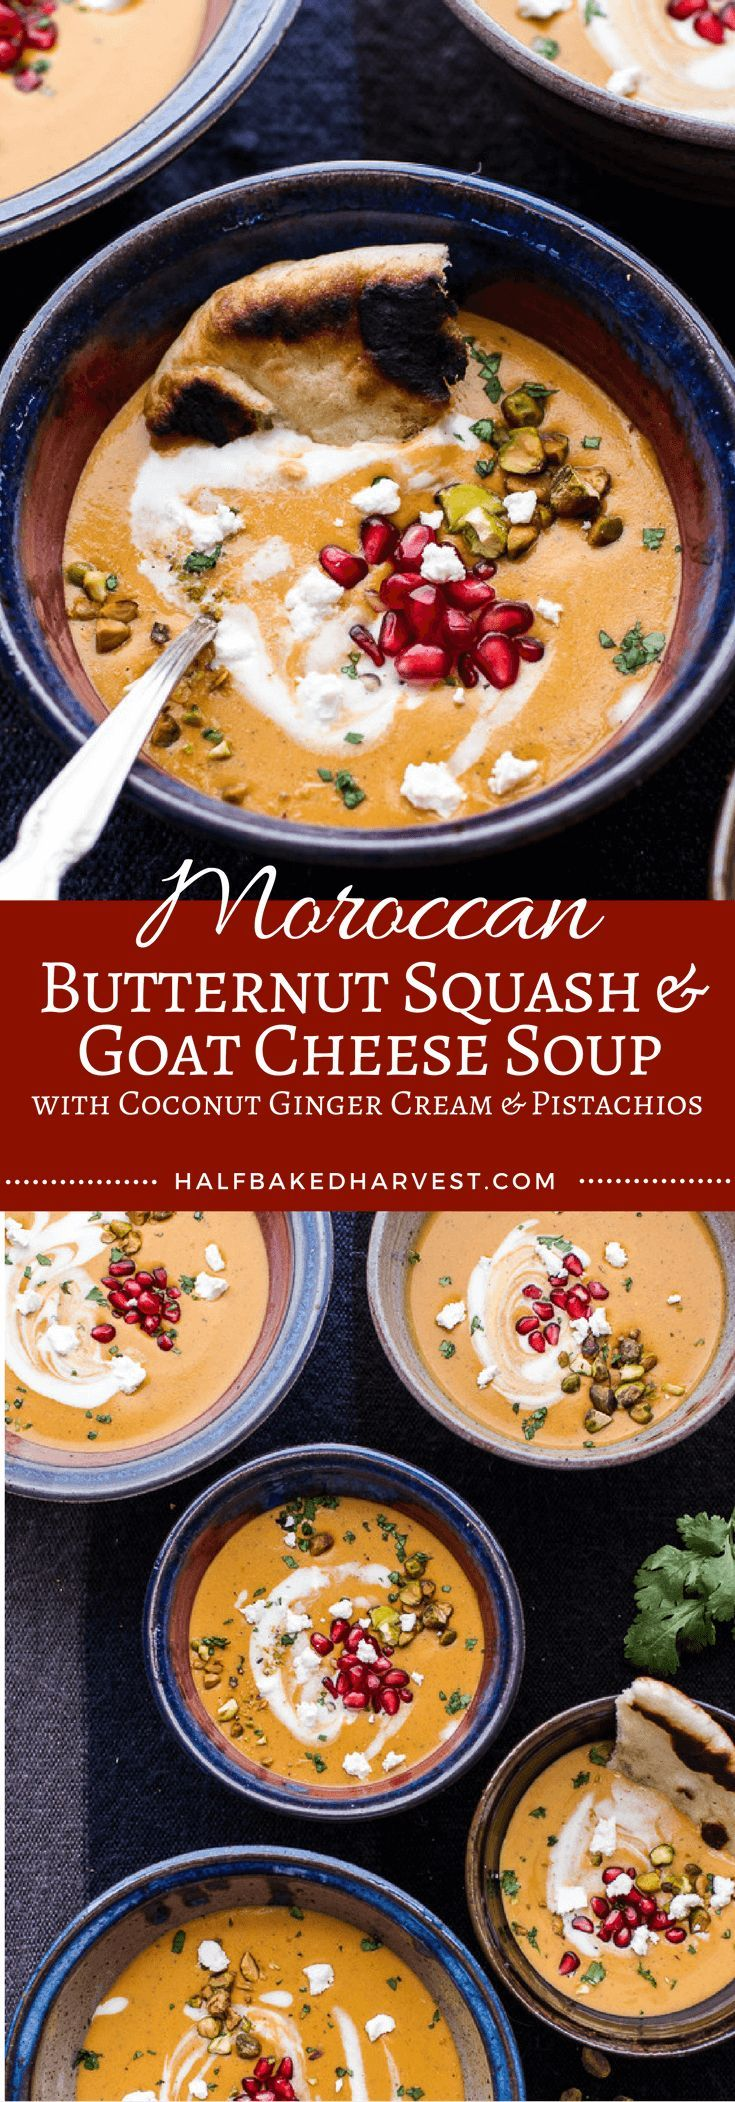 Moroccan Butternut Squash and Goat Cheese Soup w/Coconut Ginger Cream + Pistachios   http://halfbakedharvest.com /hbharvest/